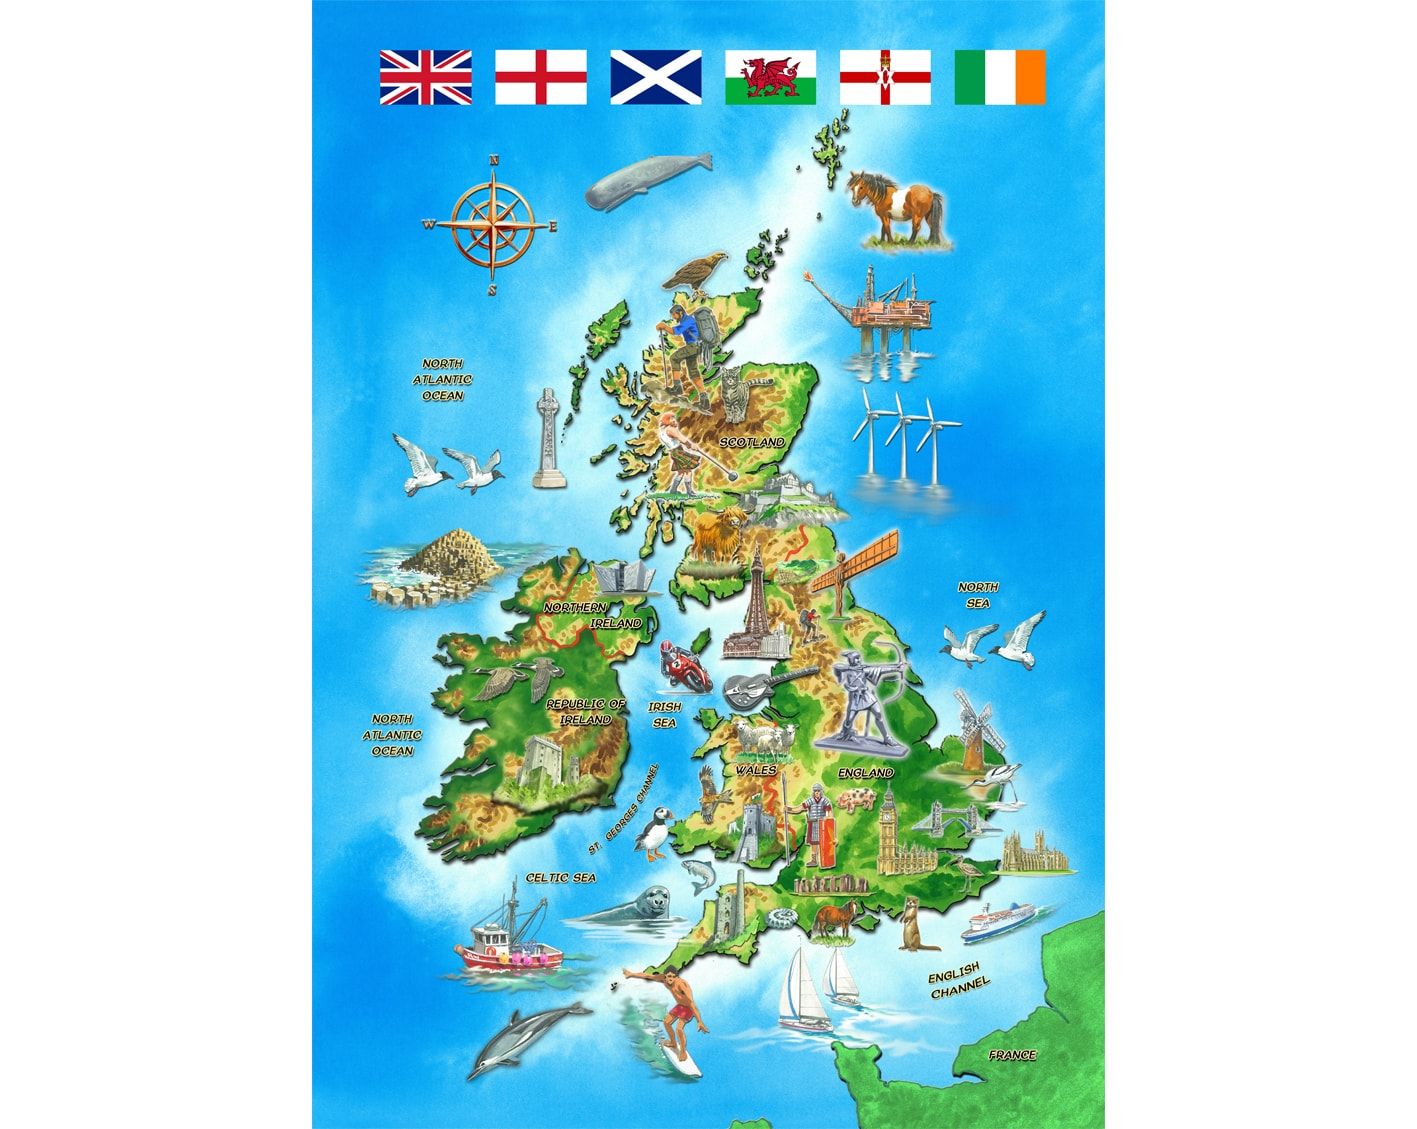 I Know My Map of the British Isles